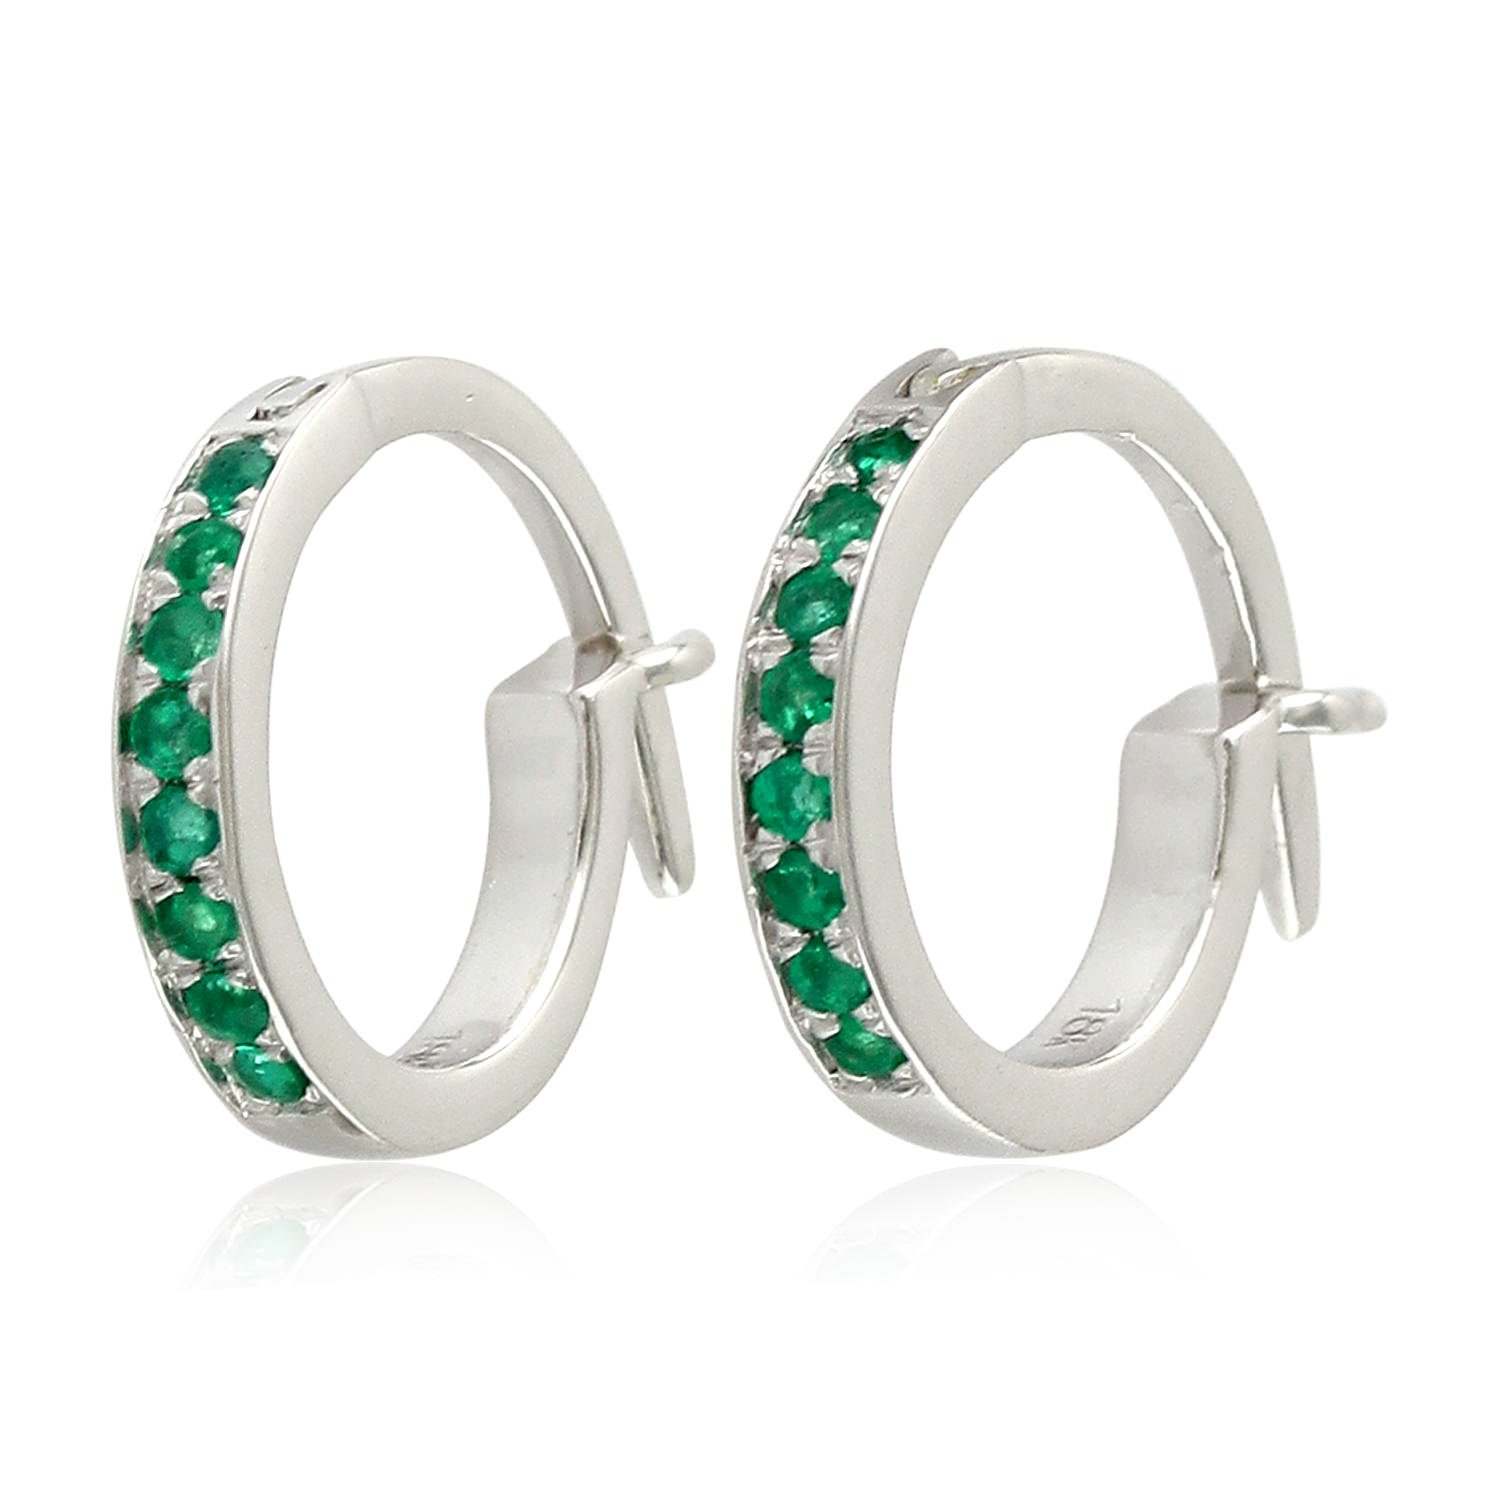 Micropave-Set Emerald Huggie Hoop Earrings in 18K White Gold